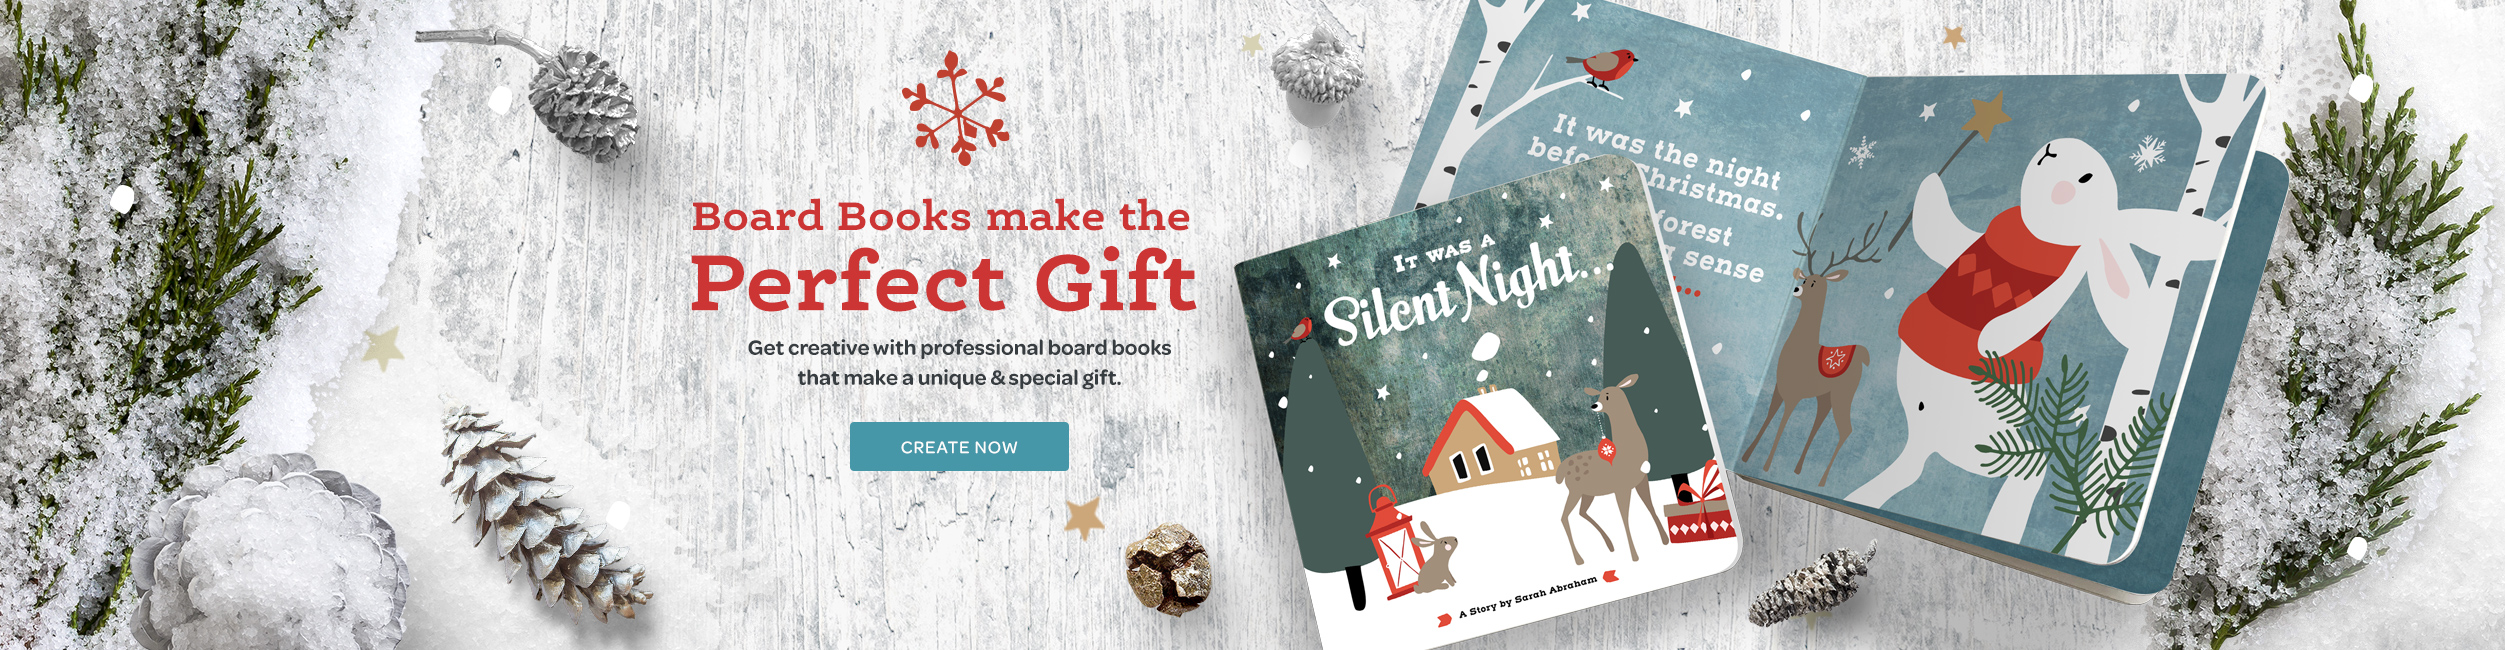 Professional Board Books make the Perfect Gift